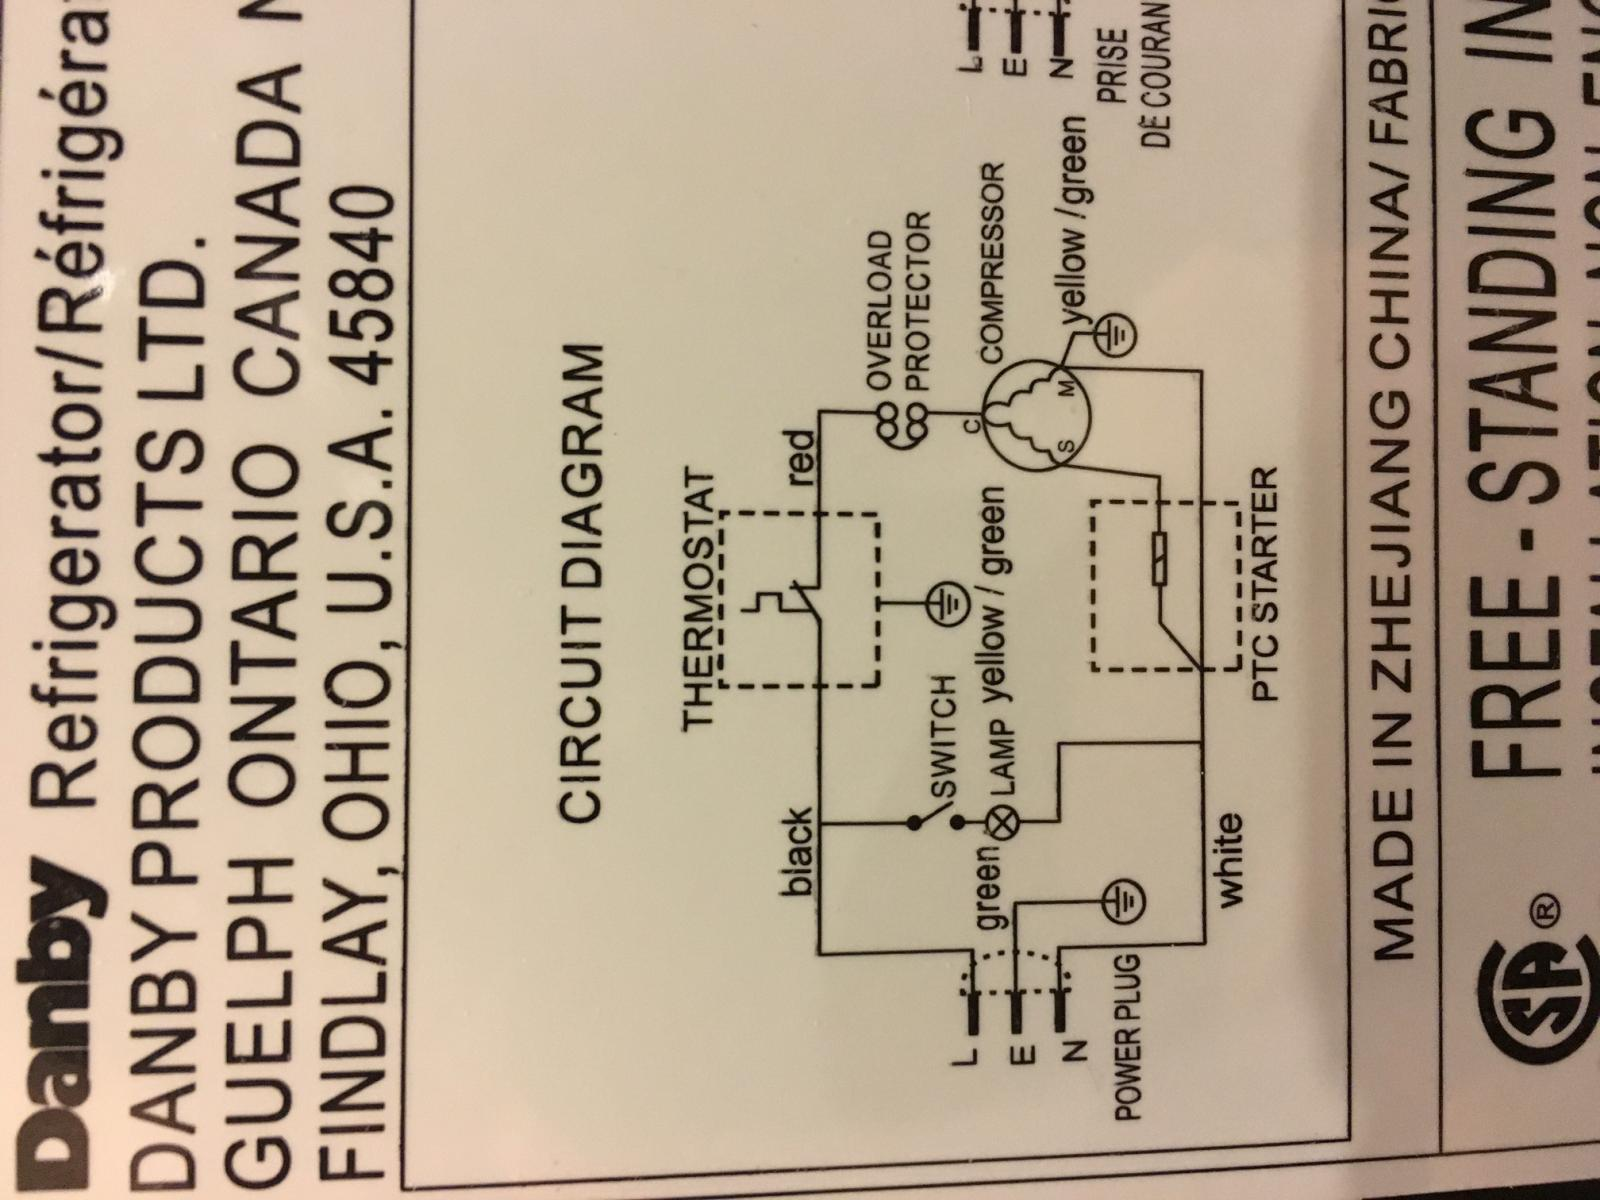 hight resolution of stc 1000 wiring for danby mini fridge homebrewtalk com beerdanby wiring diagram 2